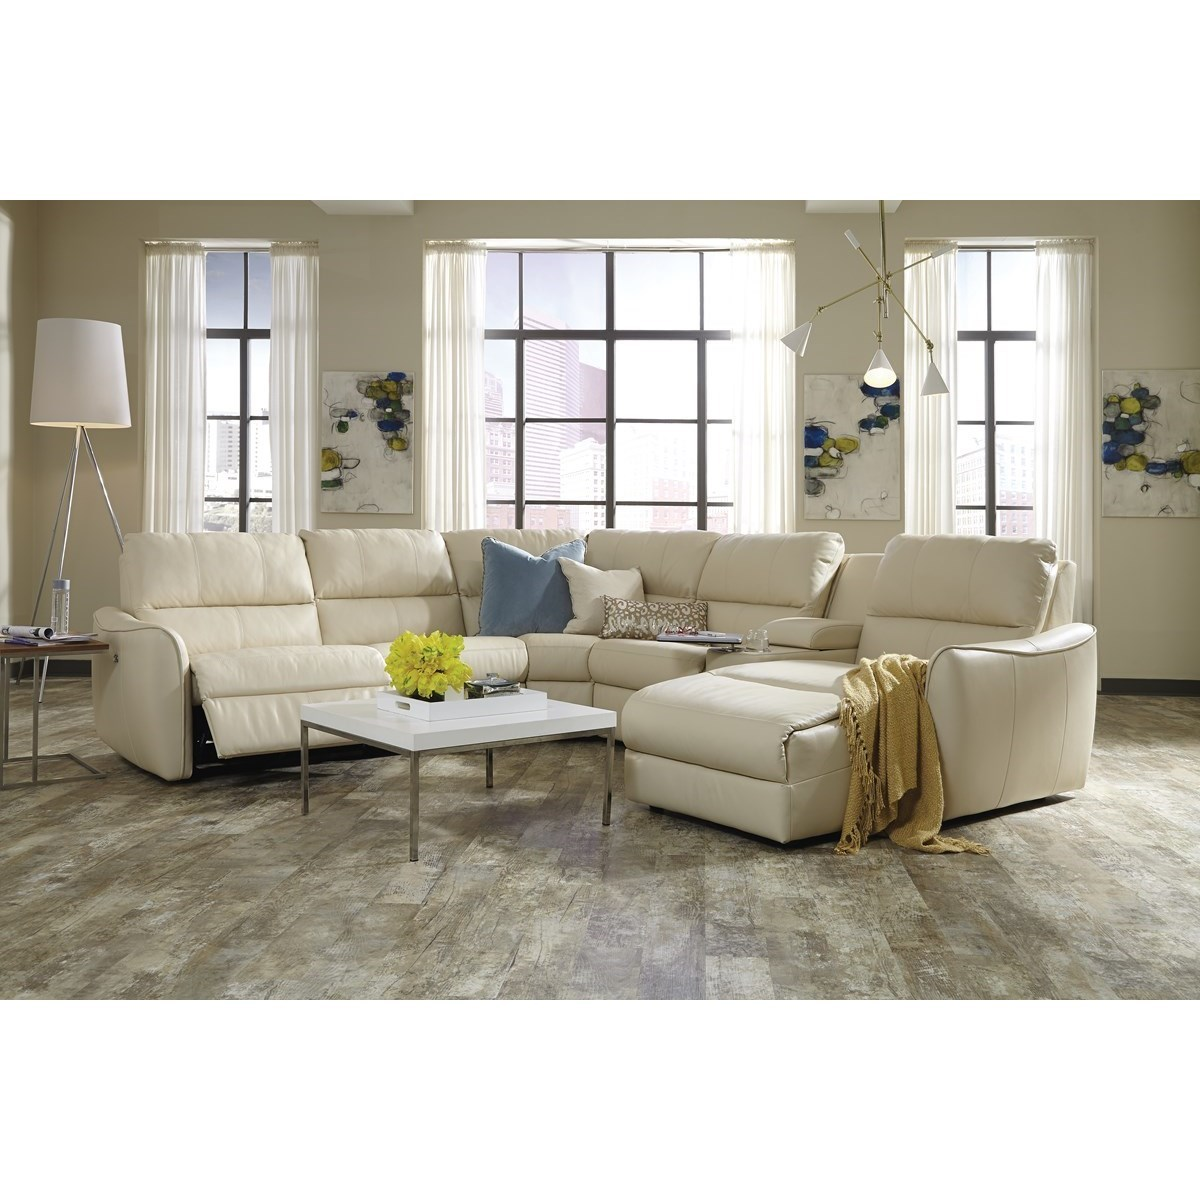 Arlo Sectional Sofa by Palliser at Corner Furniture